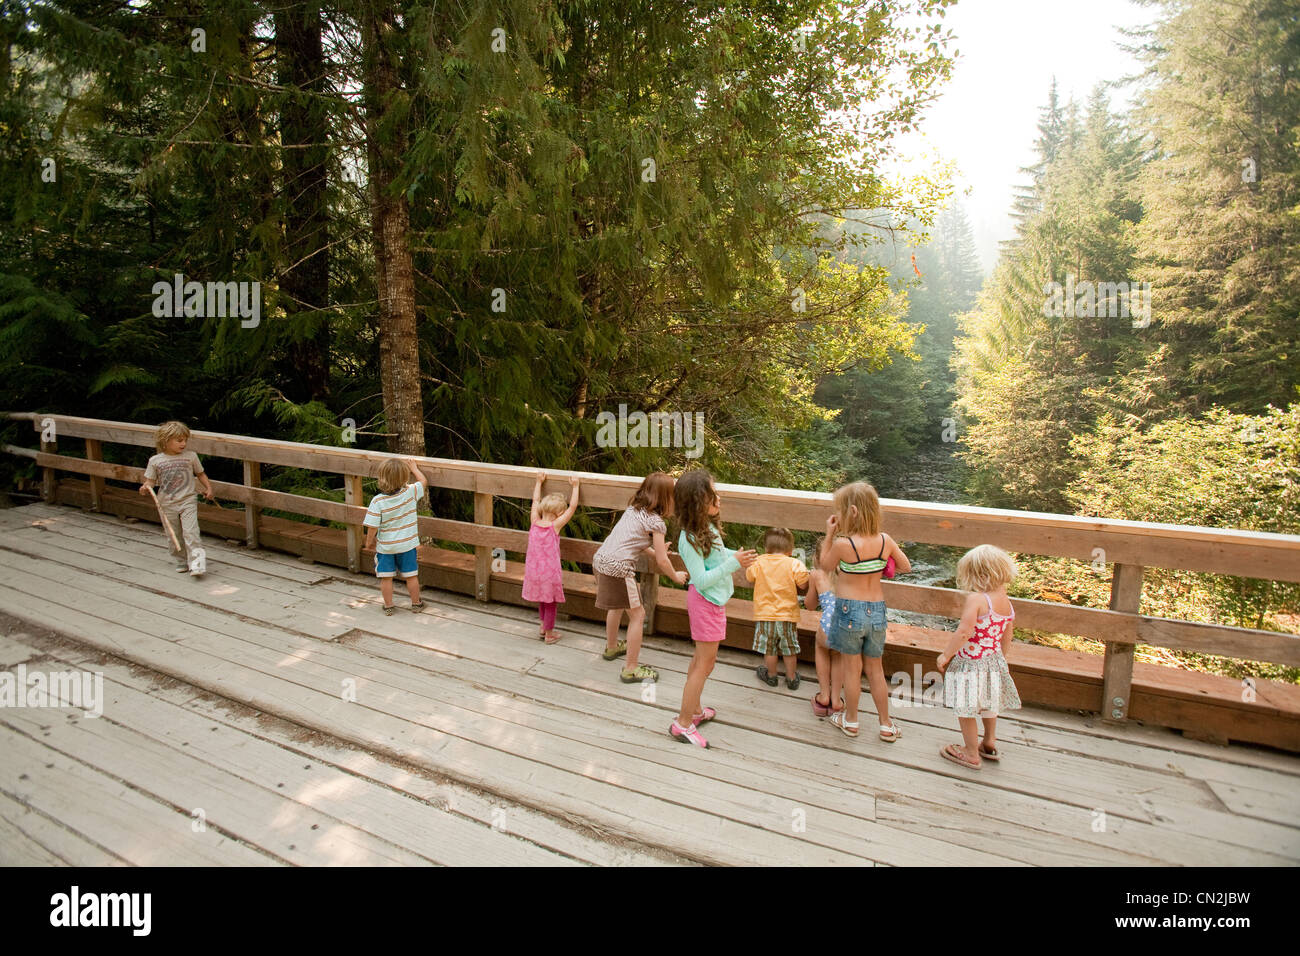 Group of children standing on wooden bridge in forest - Stock Image